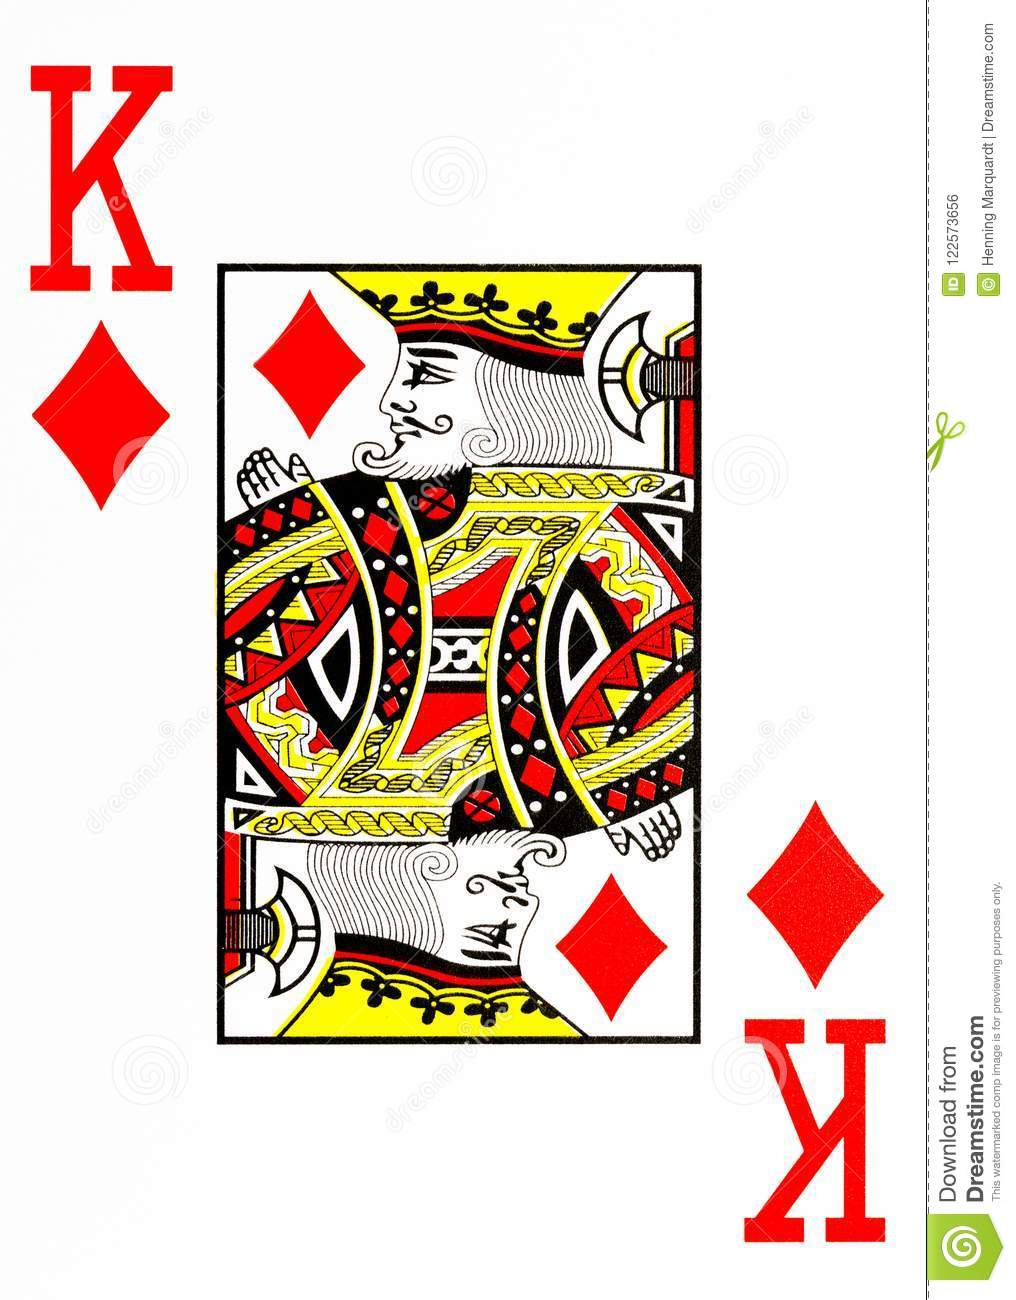 image relating to Printable Playing Card Stock known as Enormous Index Actively playing Card King Of Diamonds Inventory Case in point